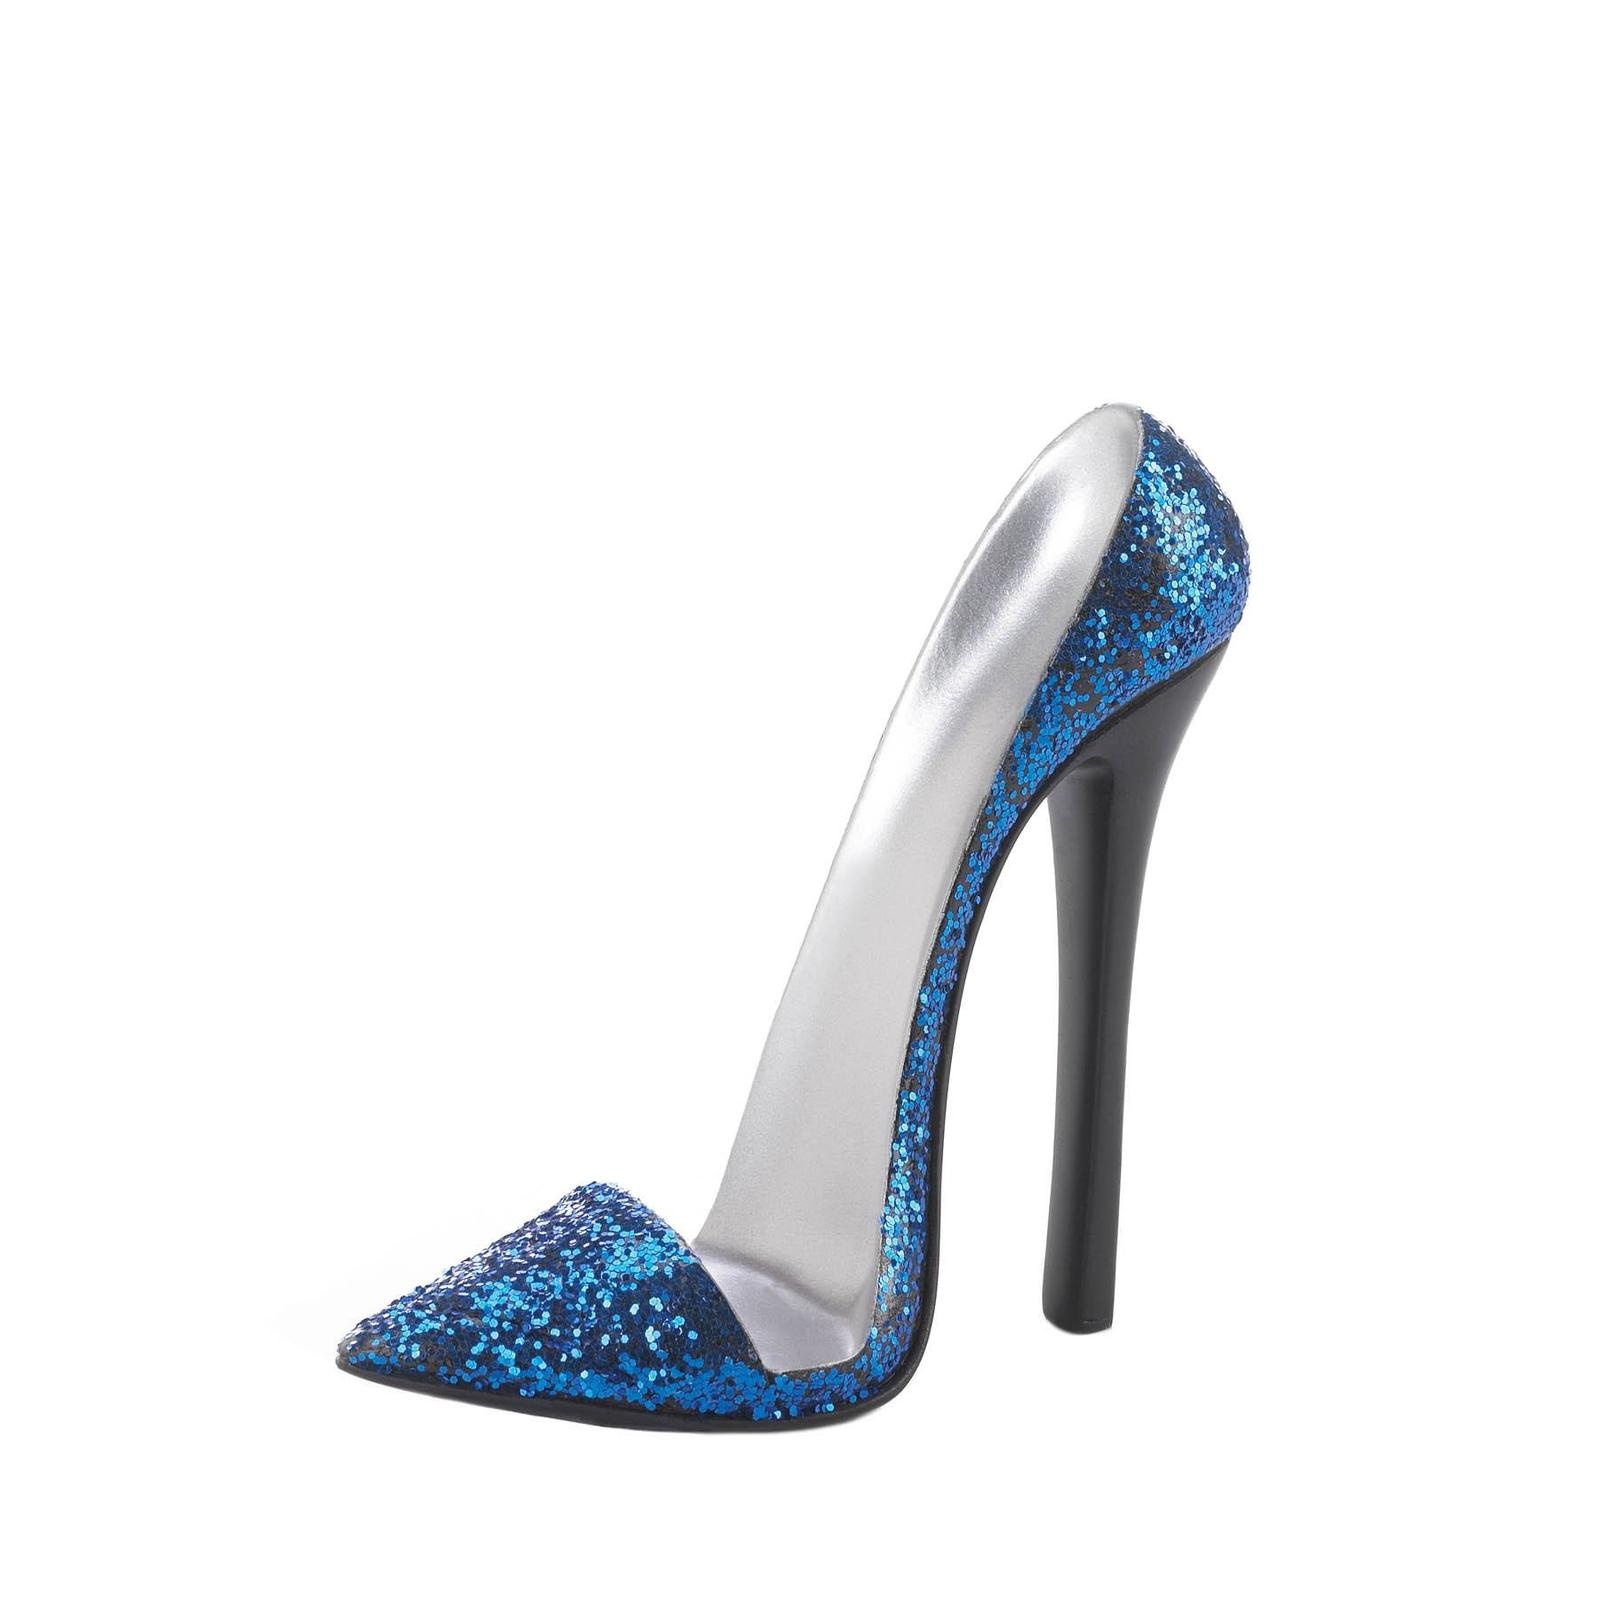 SPARKLE BLUE SHOE PHONE HOLDER Chic High Heel Mobile Cell Stand Gift